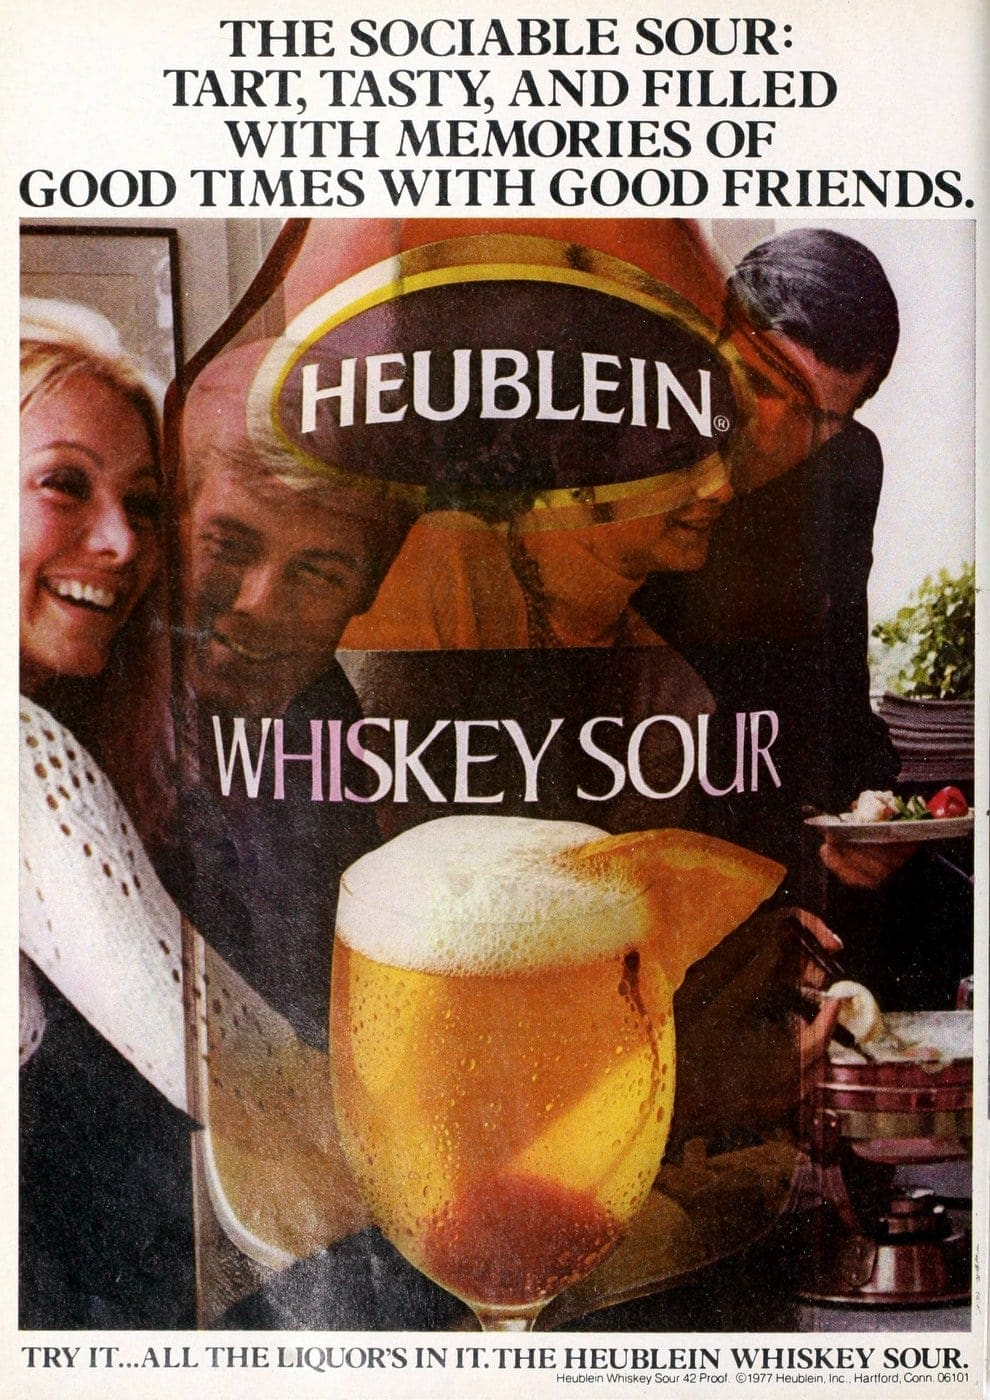 Retro 70s Heublein Whiskey Sour drink mix (1977)